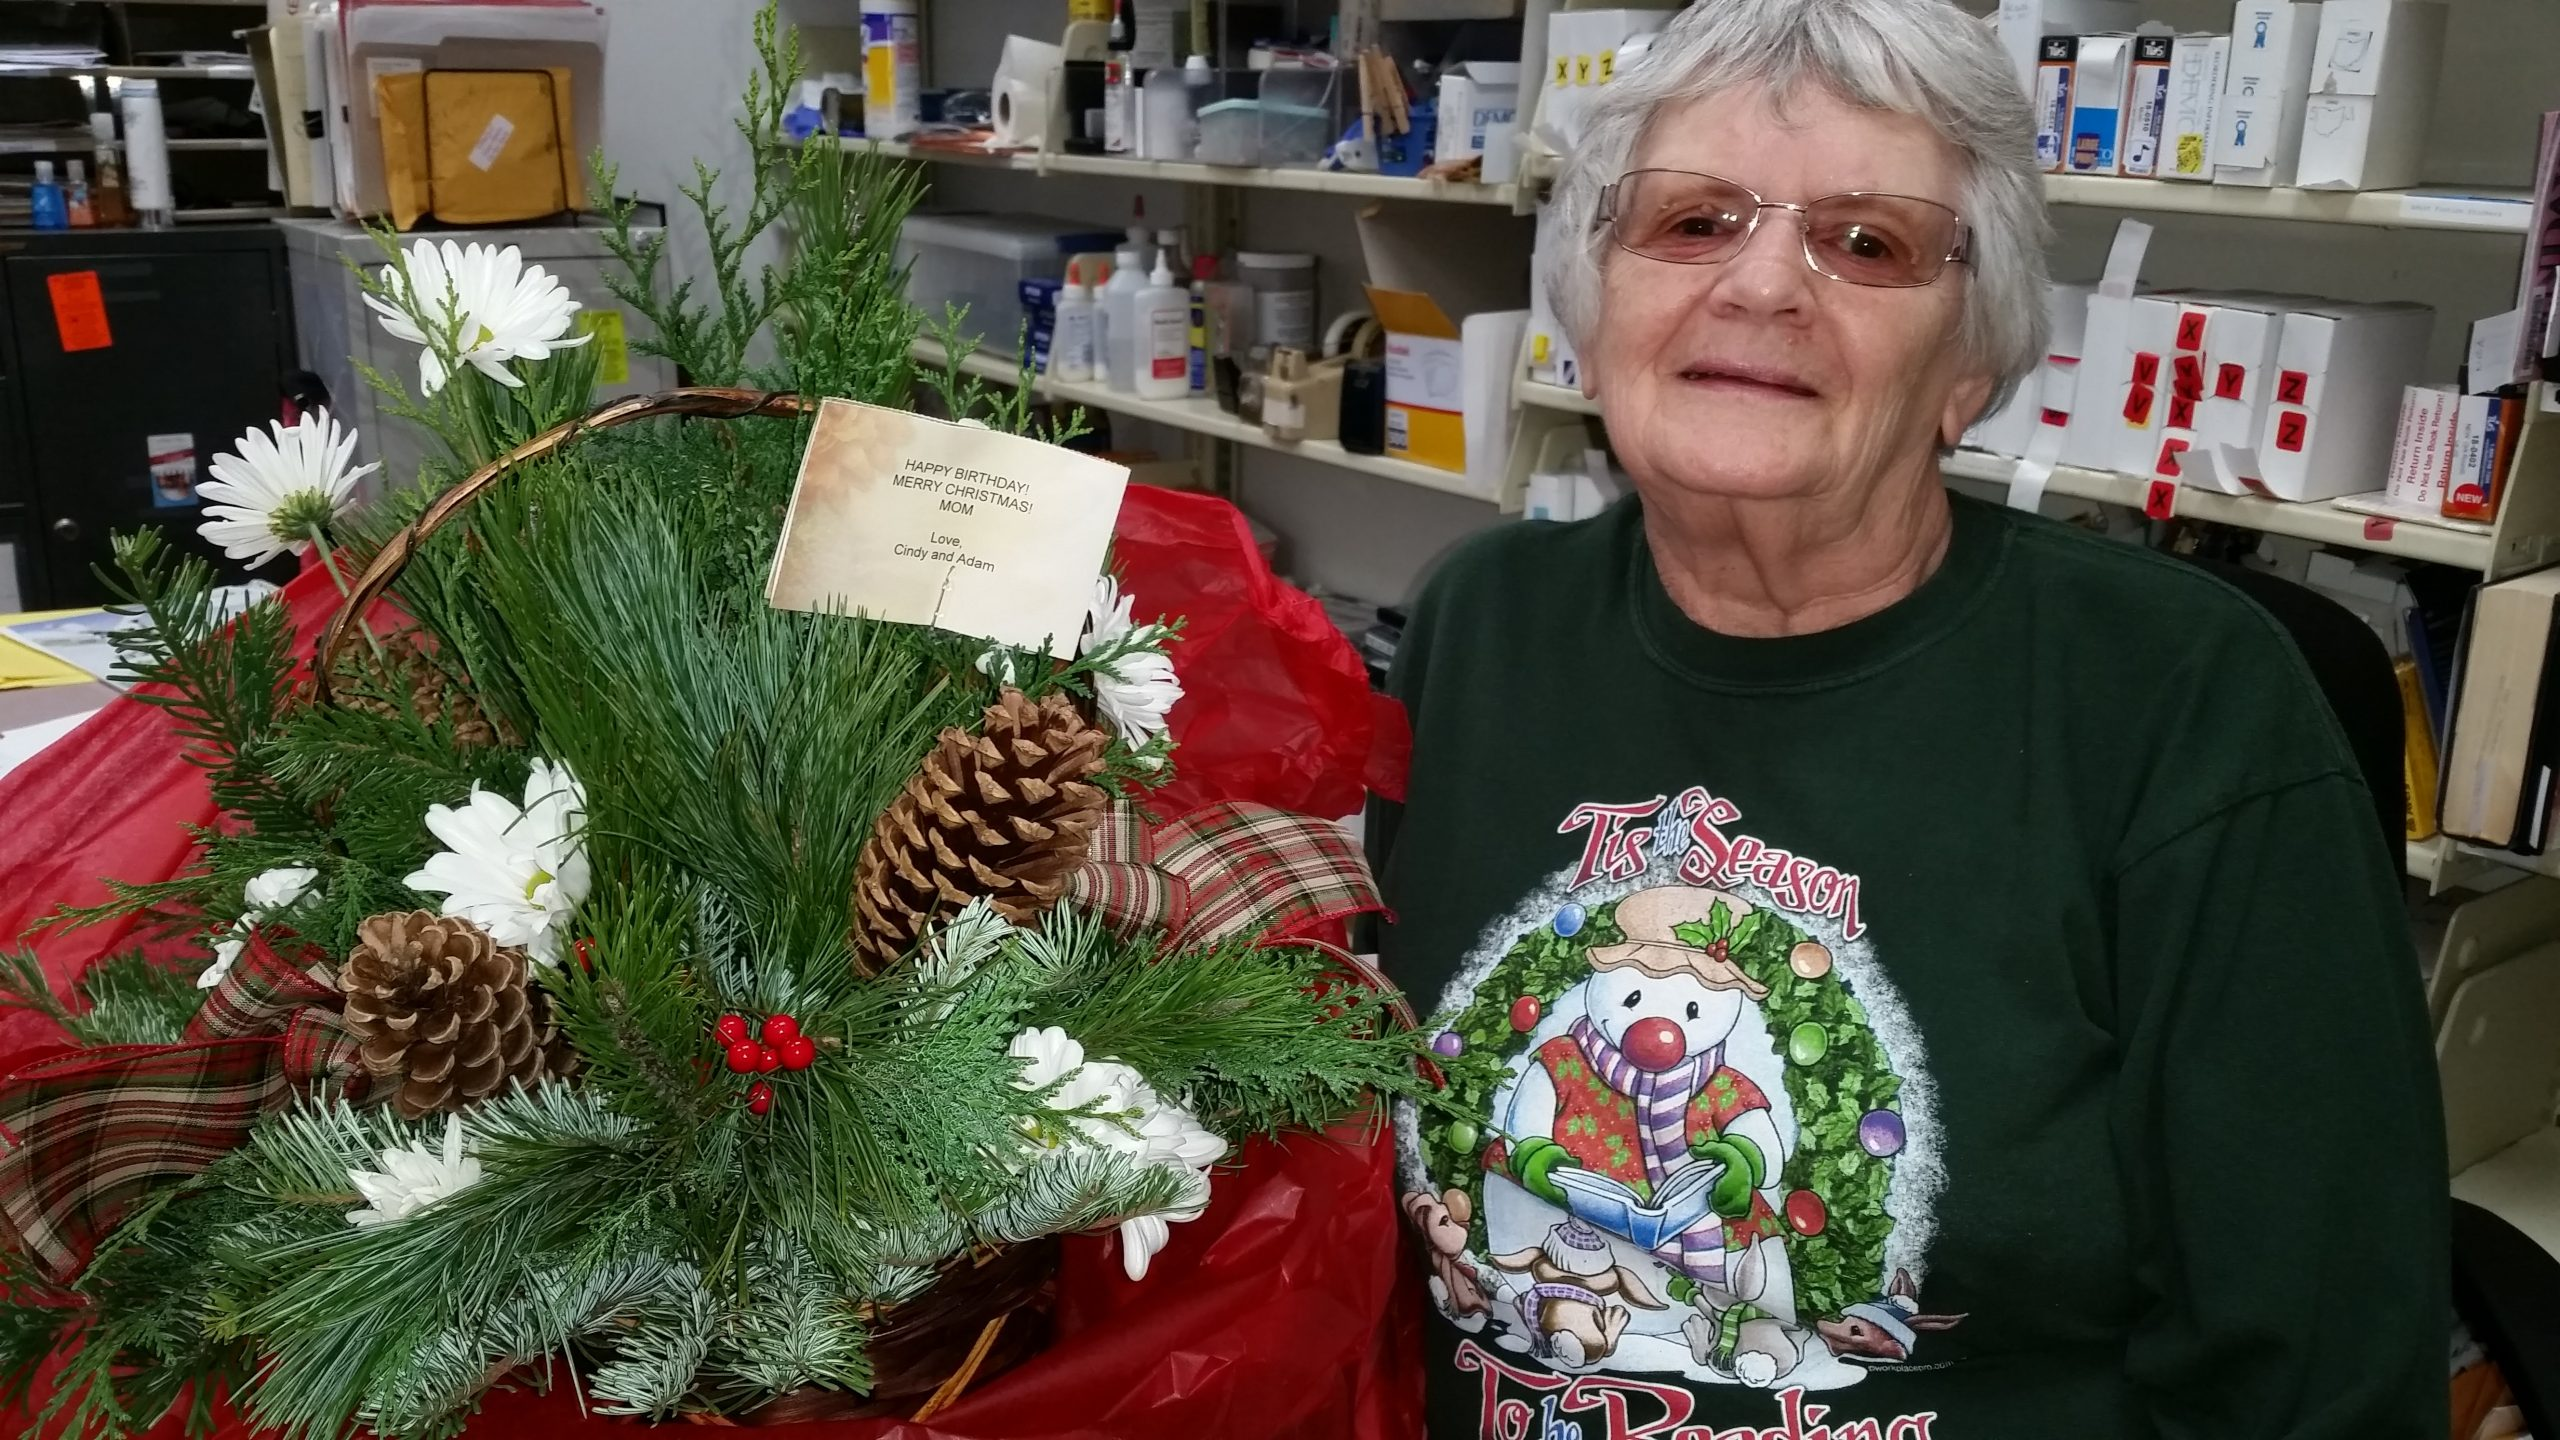 Congratulations to Peggy Riley on her retirement from Mt. Sterling Public Library! She officially retired as of July 1, 2020. Peggy has been with the library about 30 years. We wish her good health and happiness in her retirement endeavors.